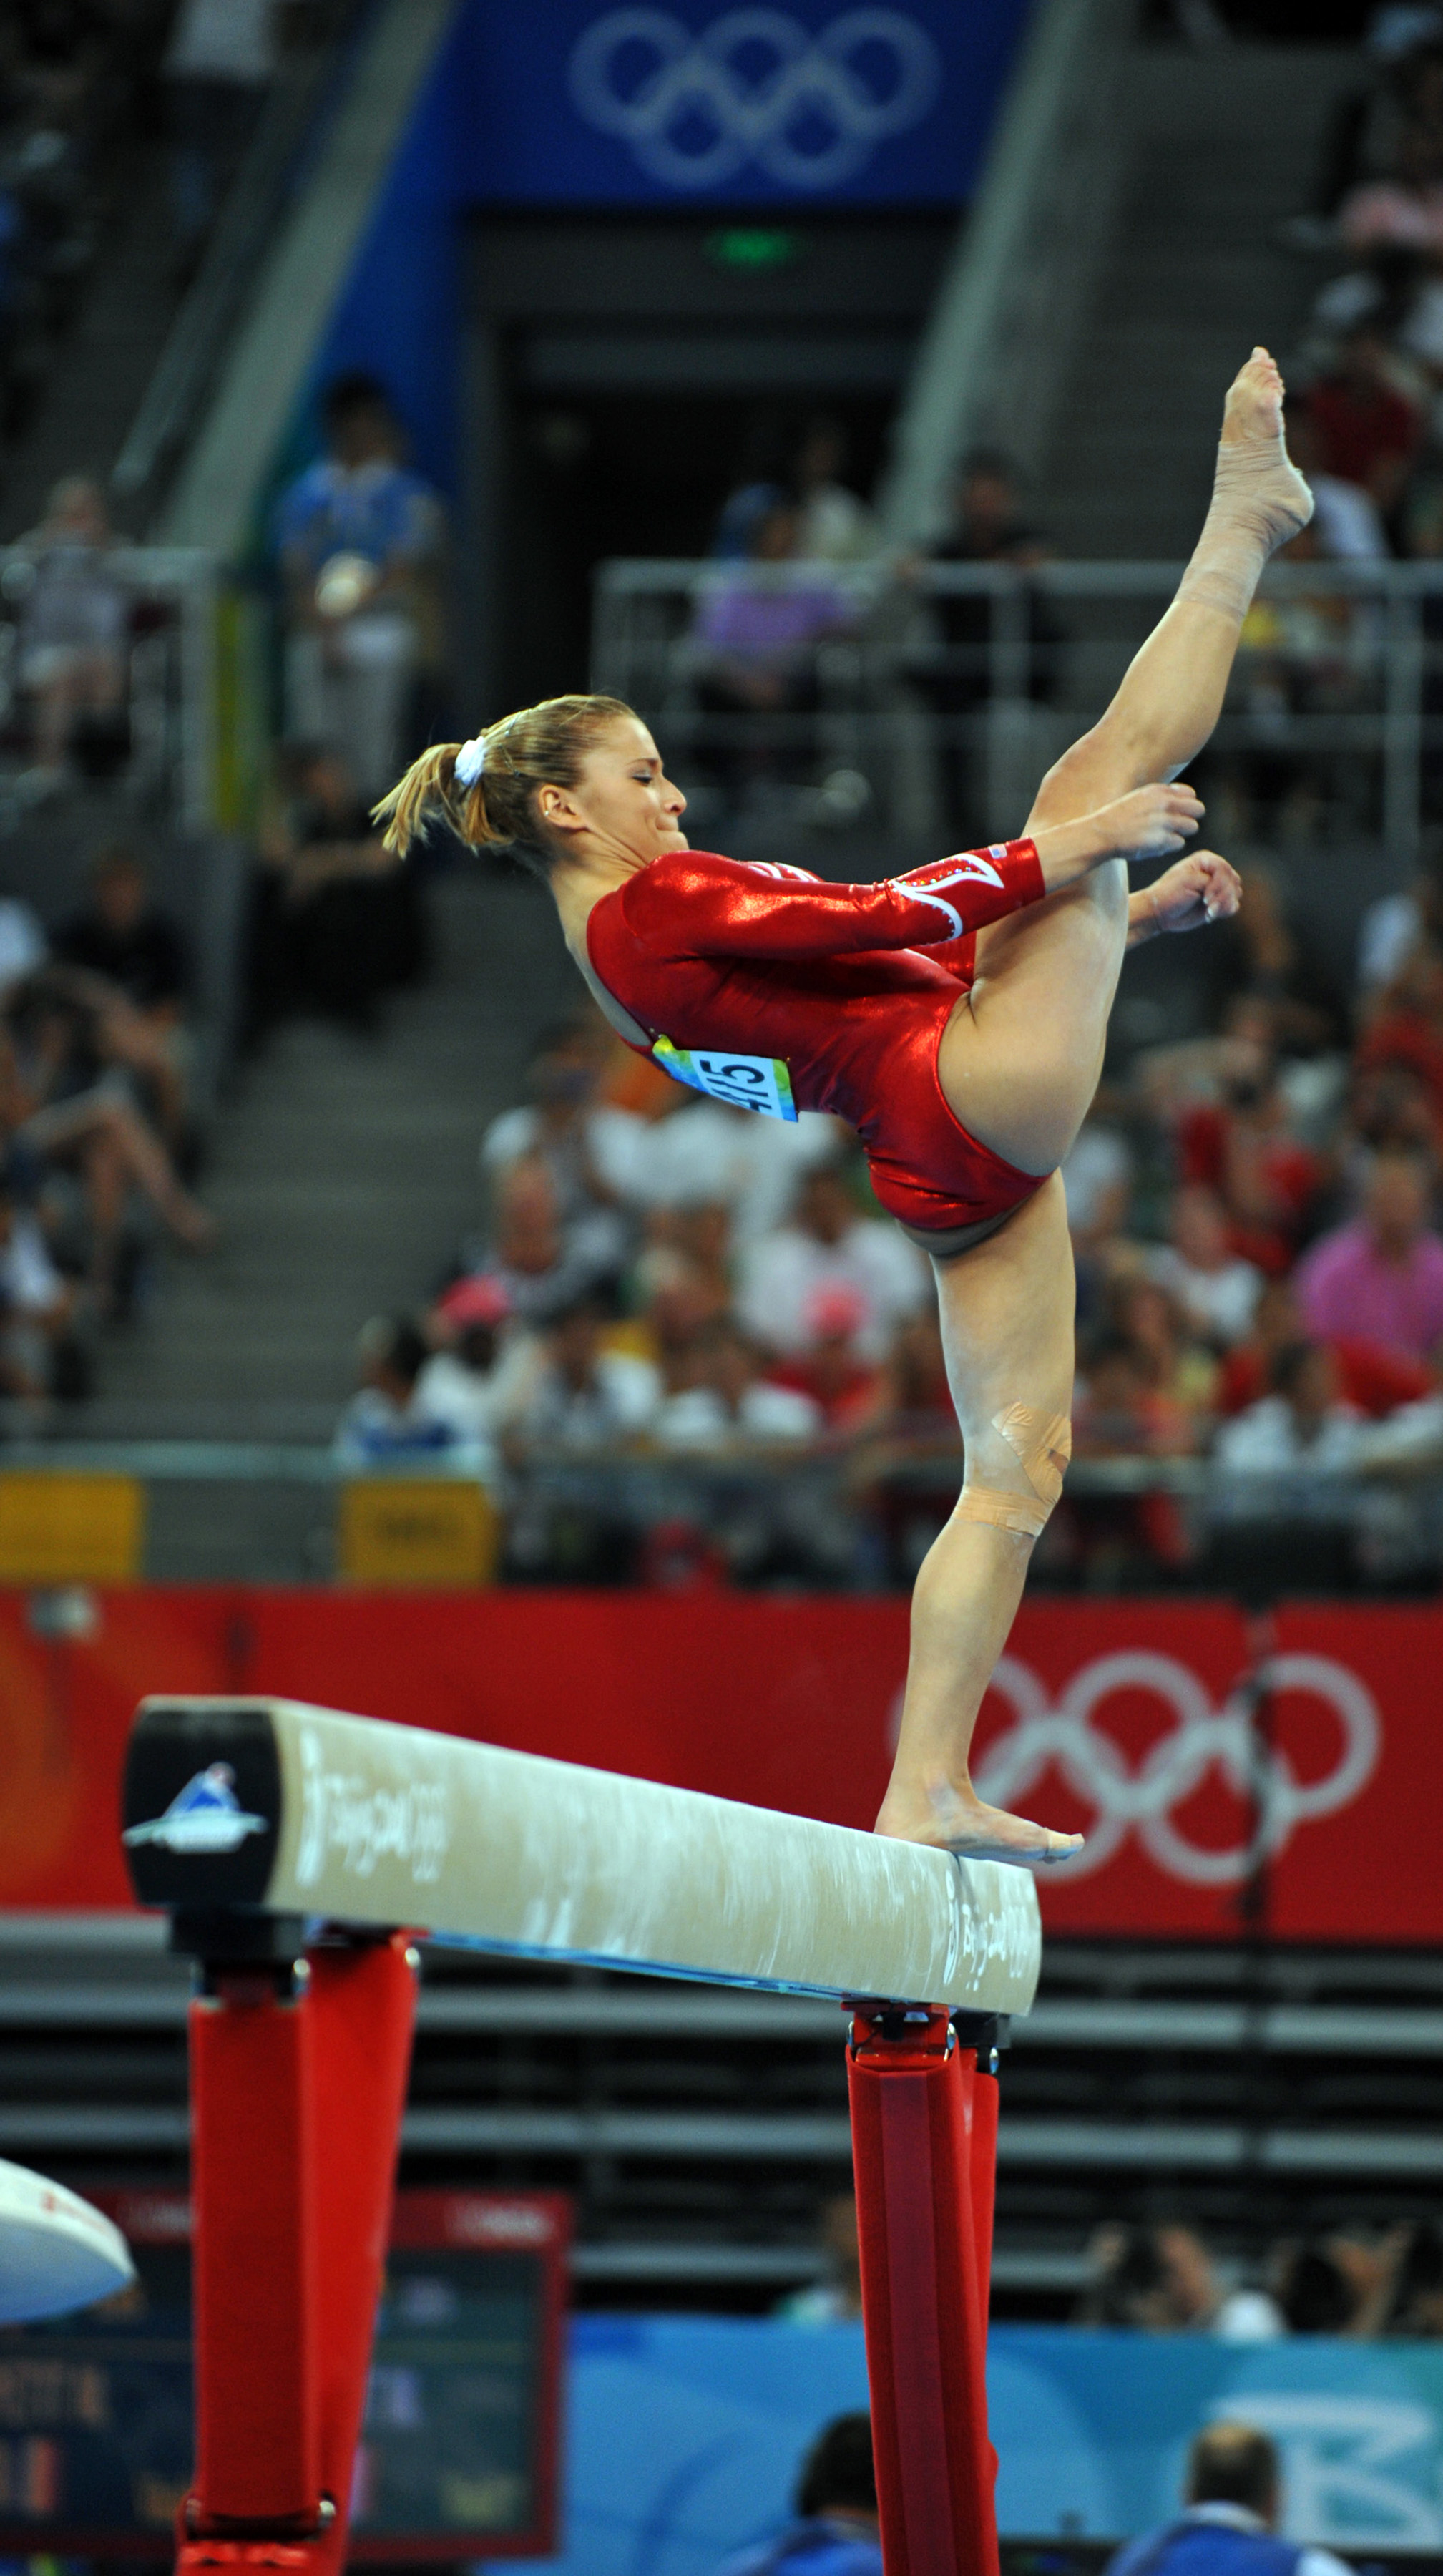 Alicia Sacramone represents United States of America during Beijing Olympics in 2008